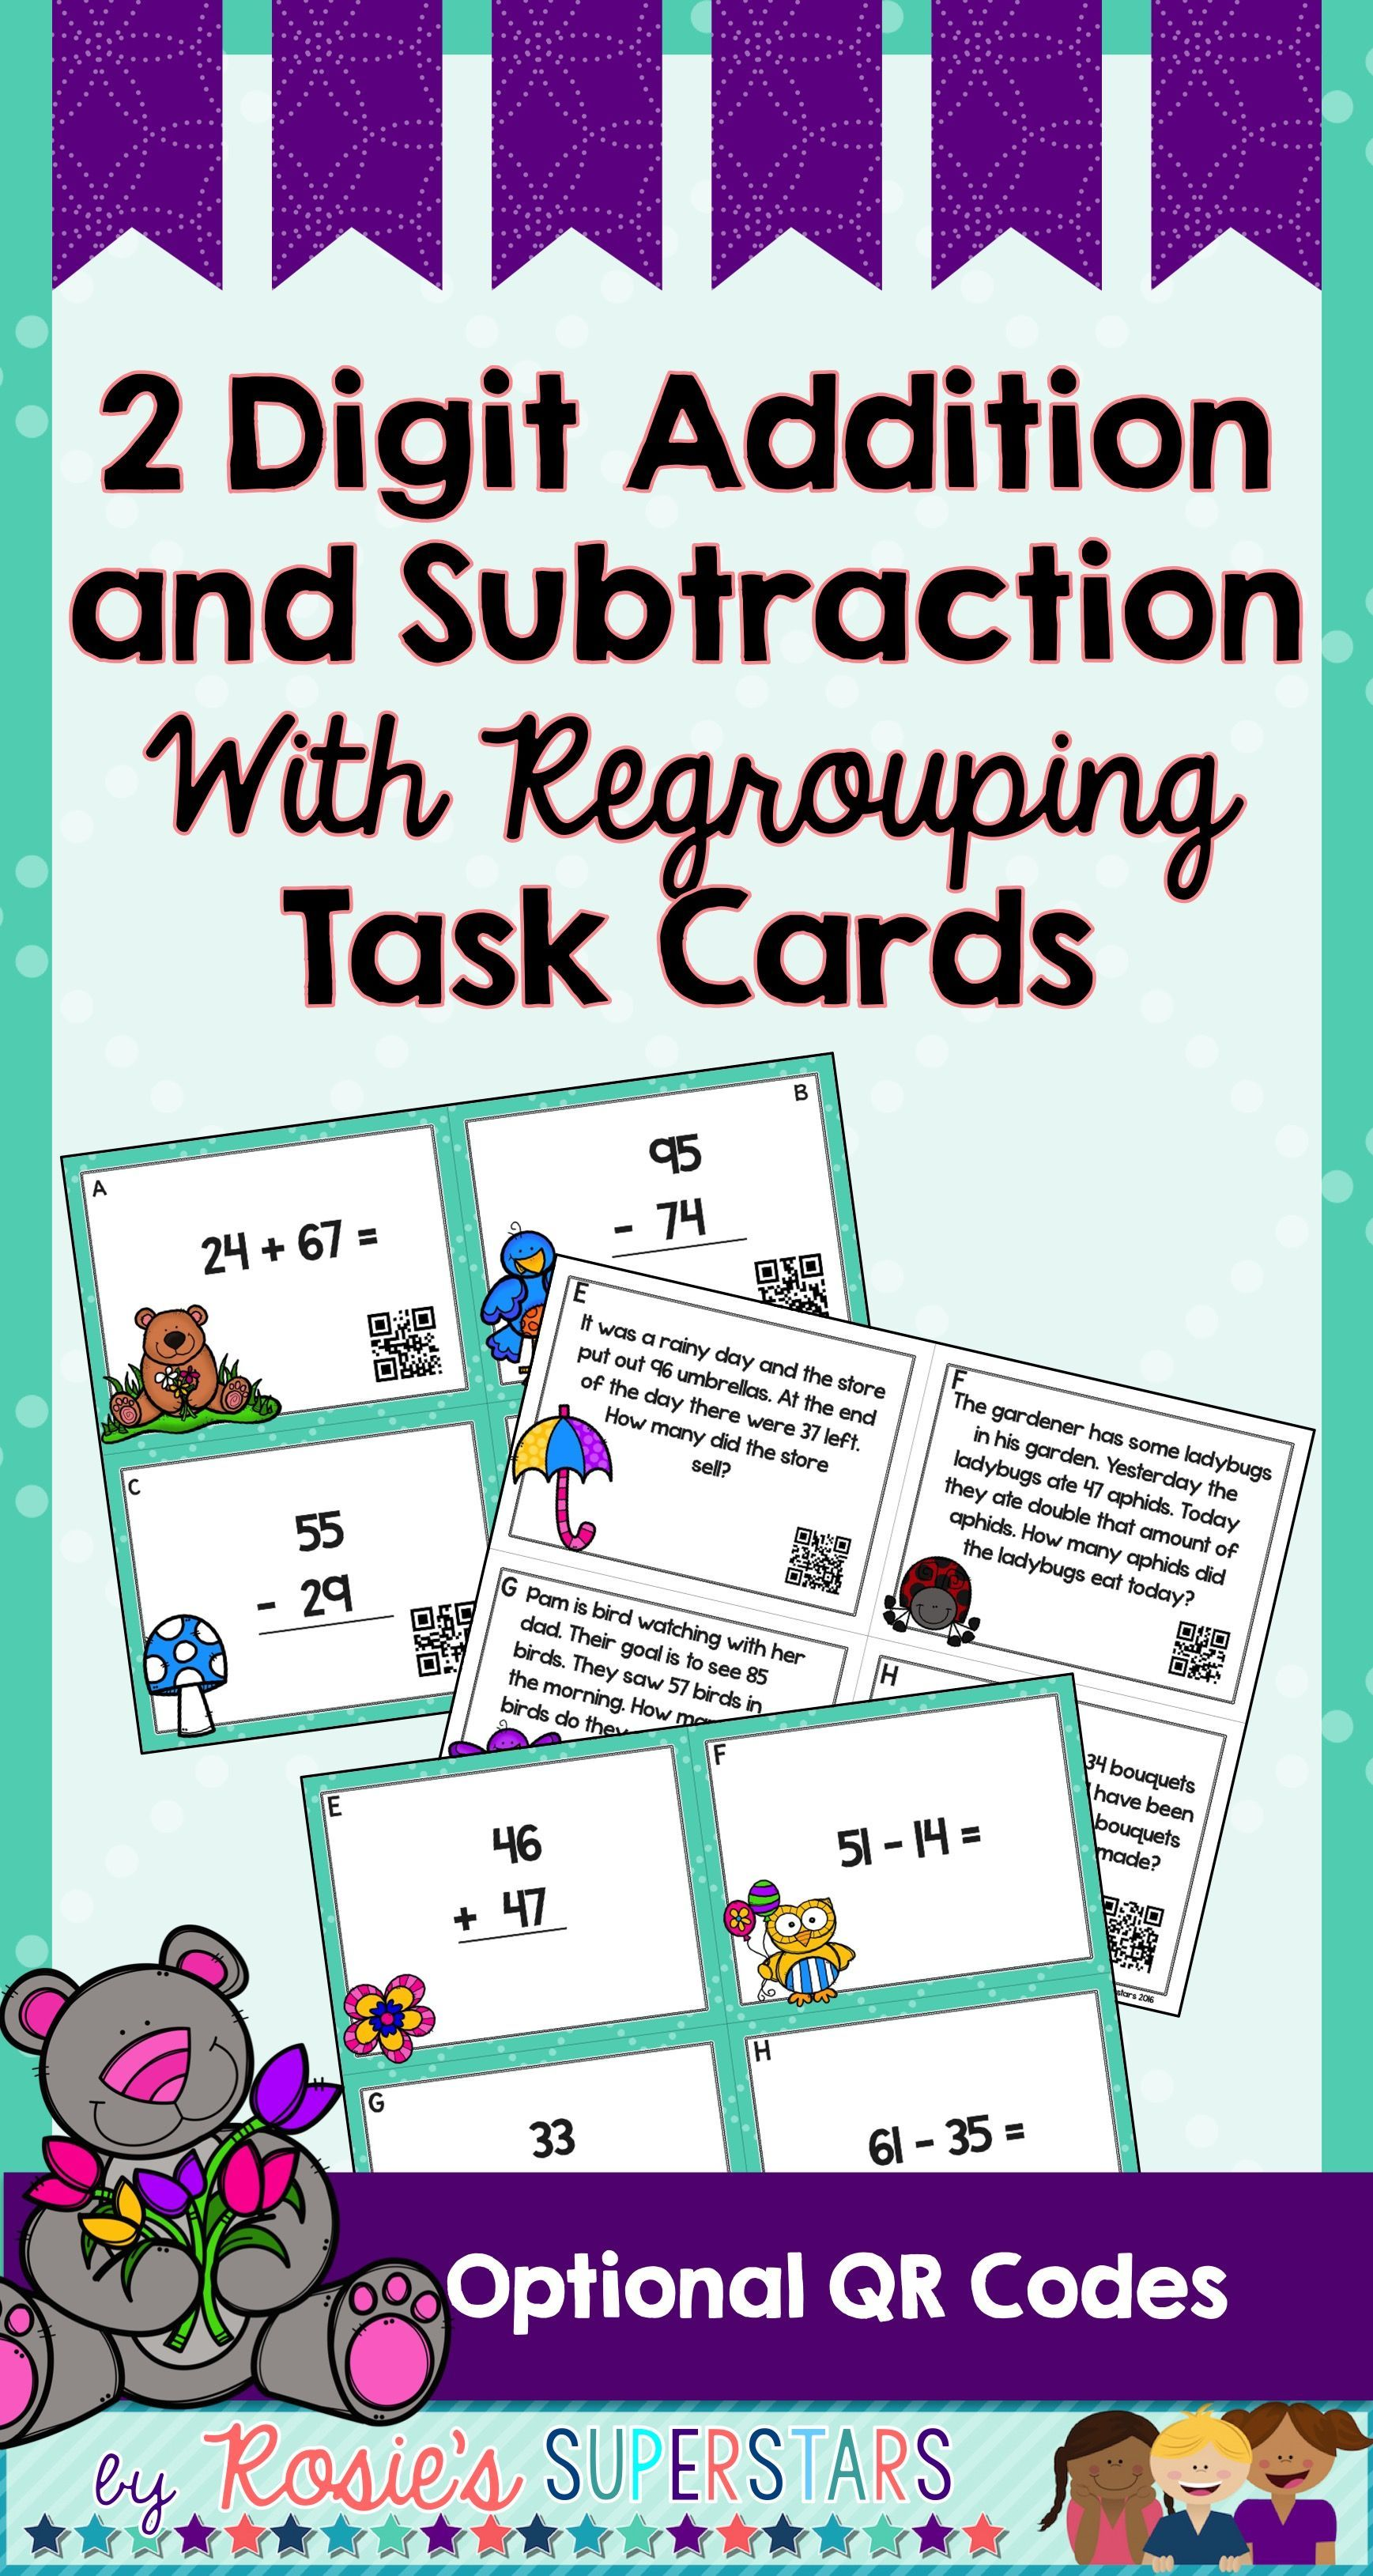 Use These Fun And Engaging Task Cards To Have Your